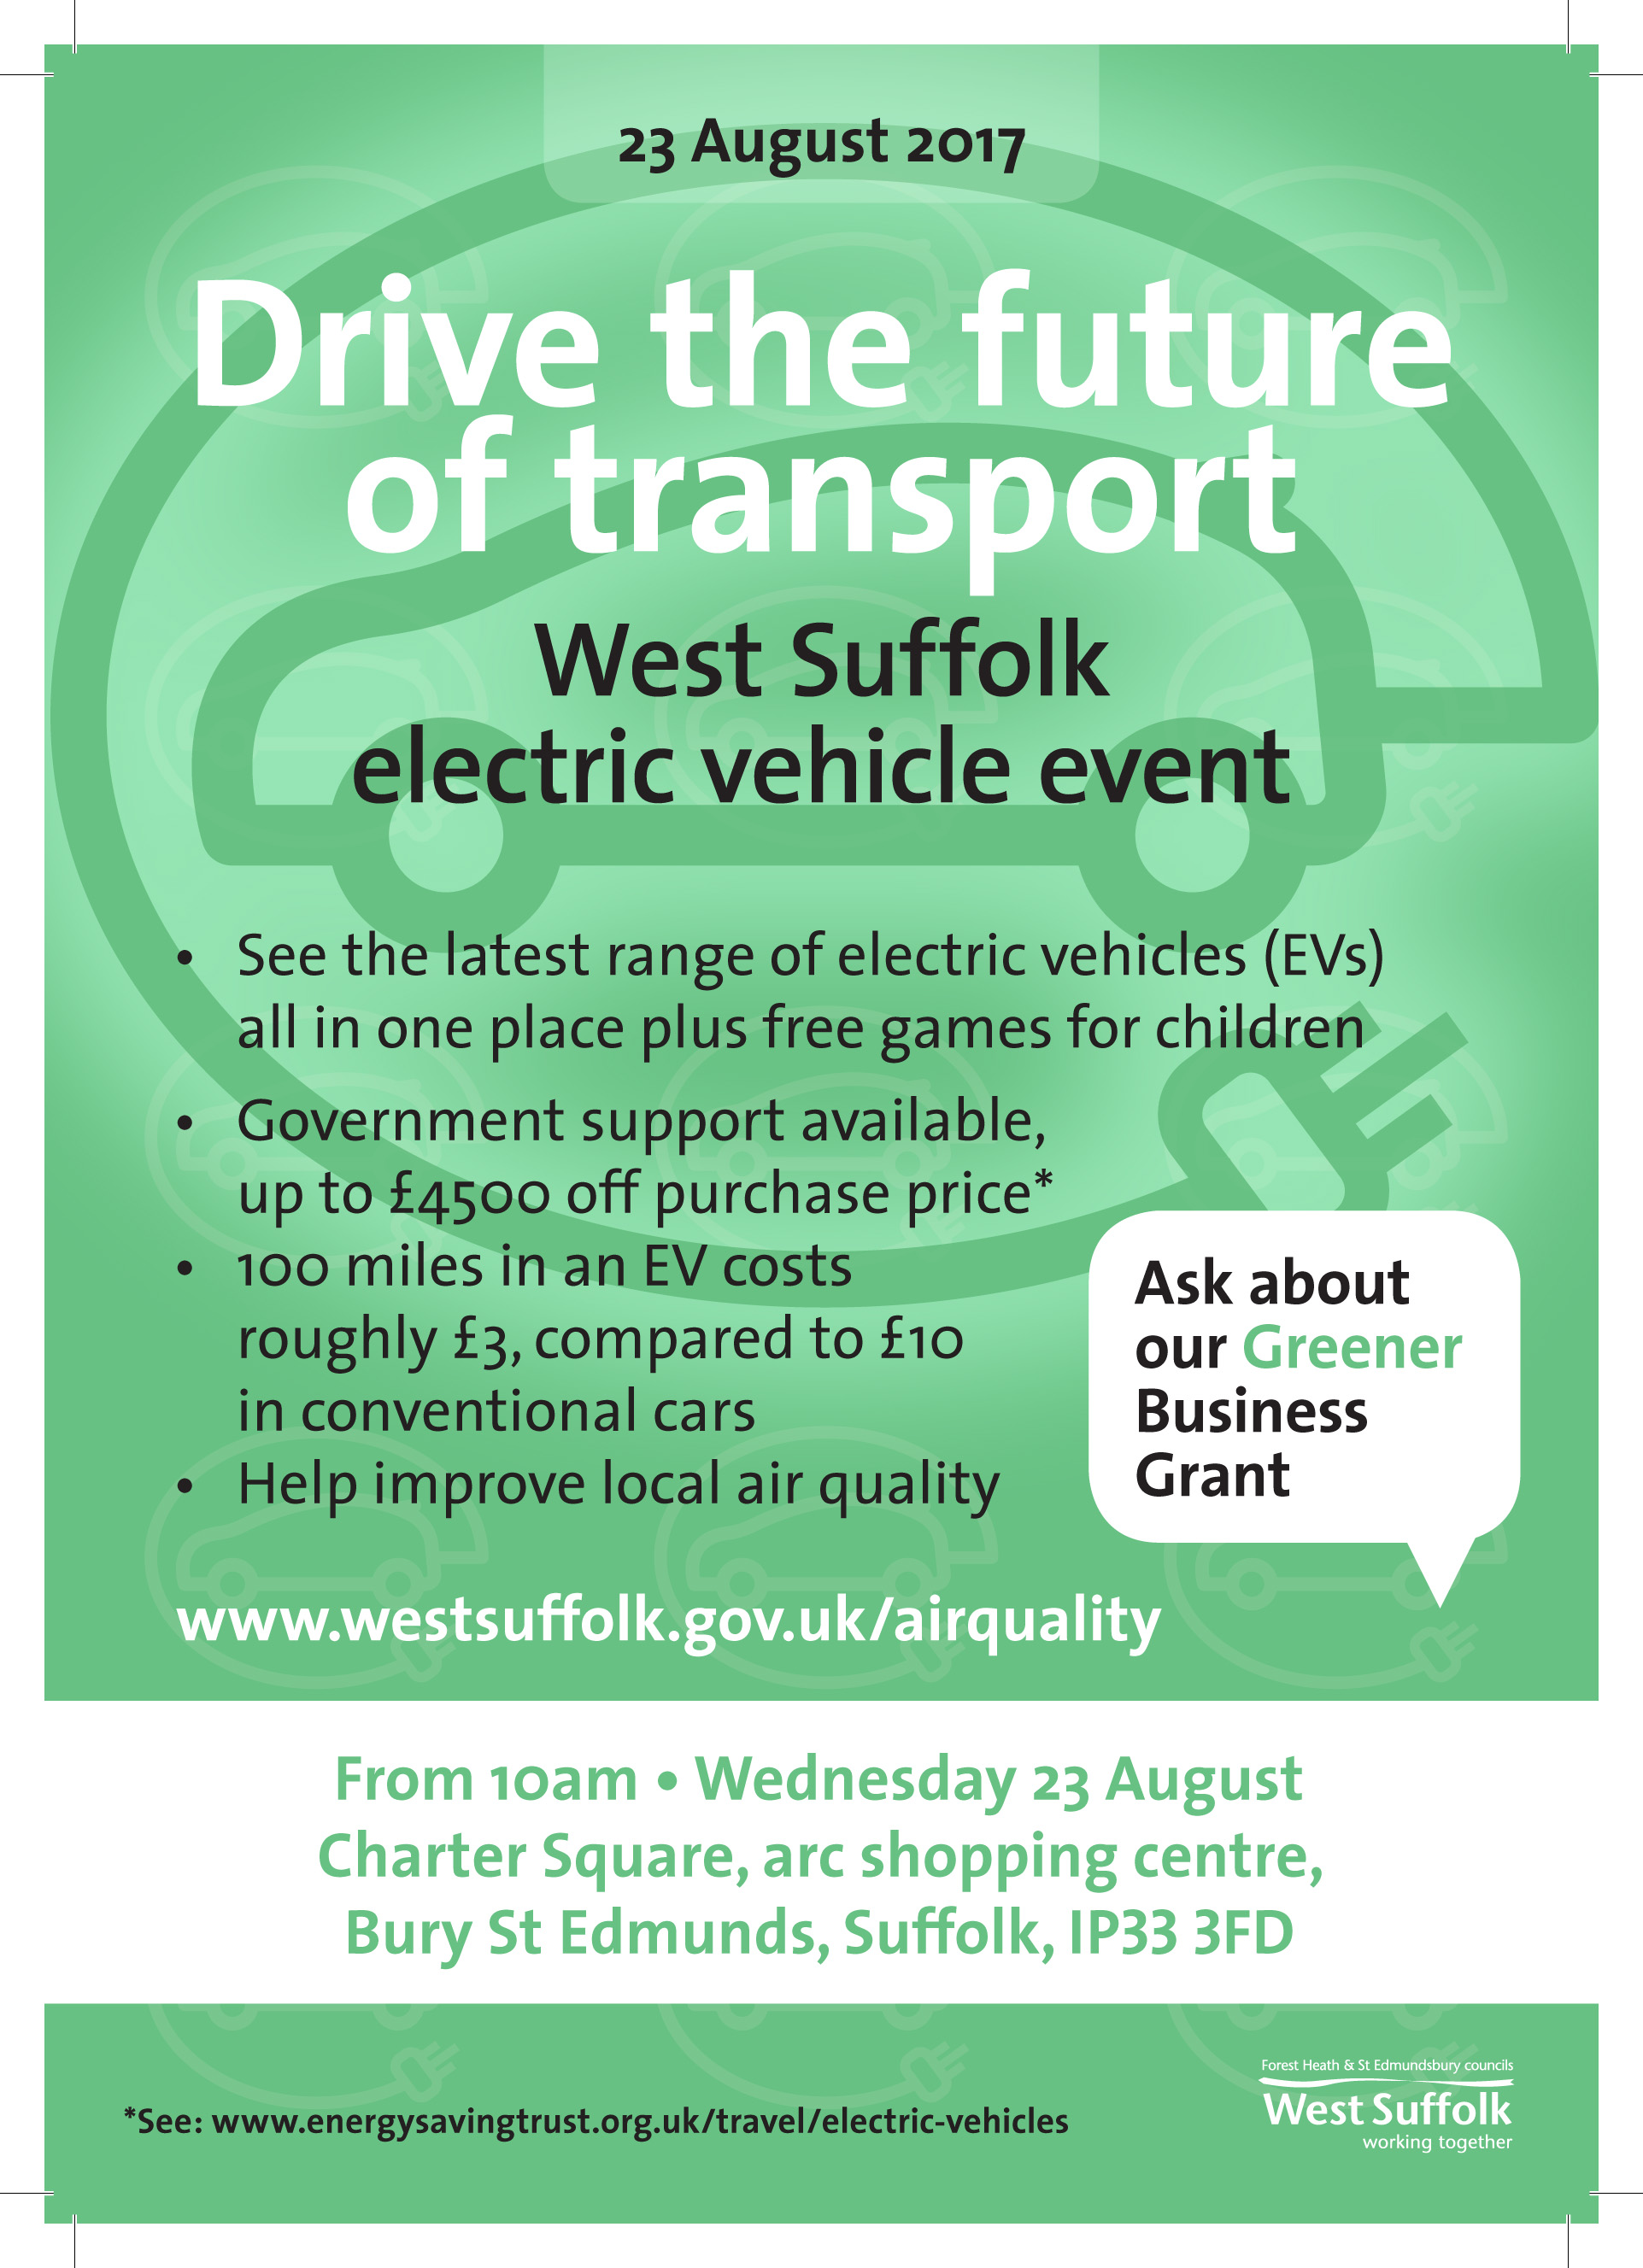 West Suffolk electric vehicle event